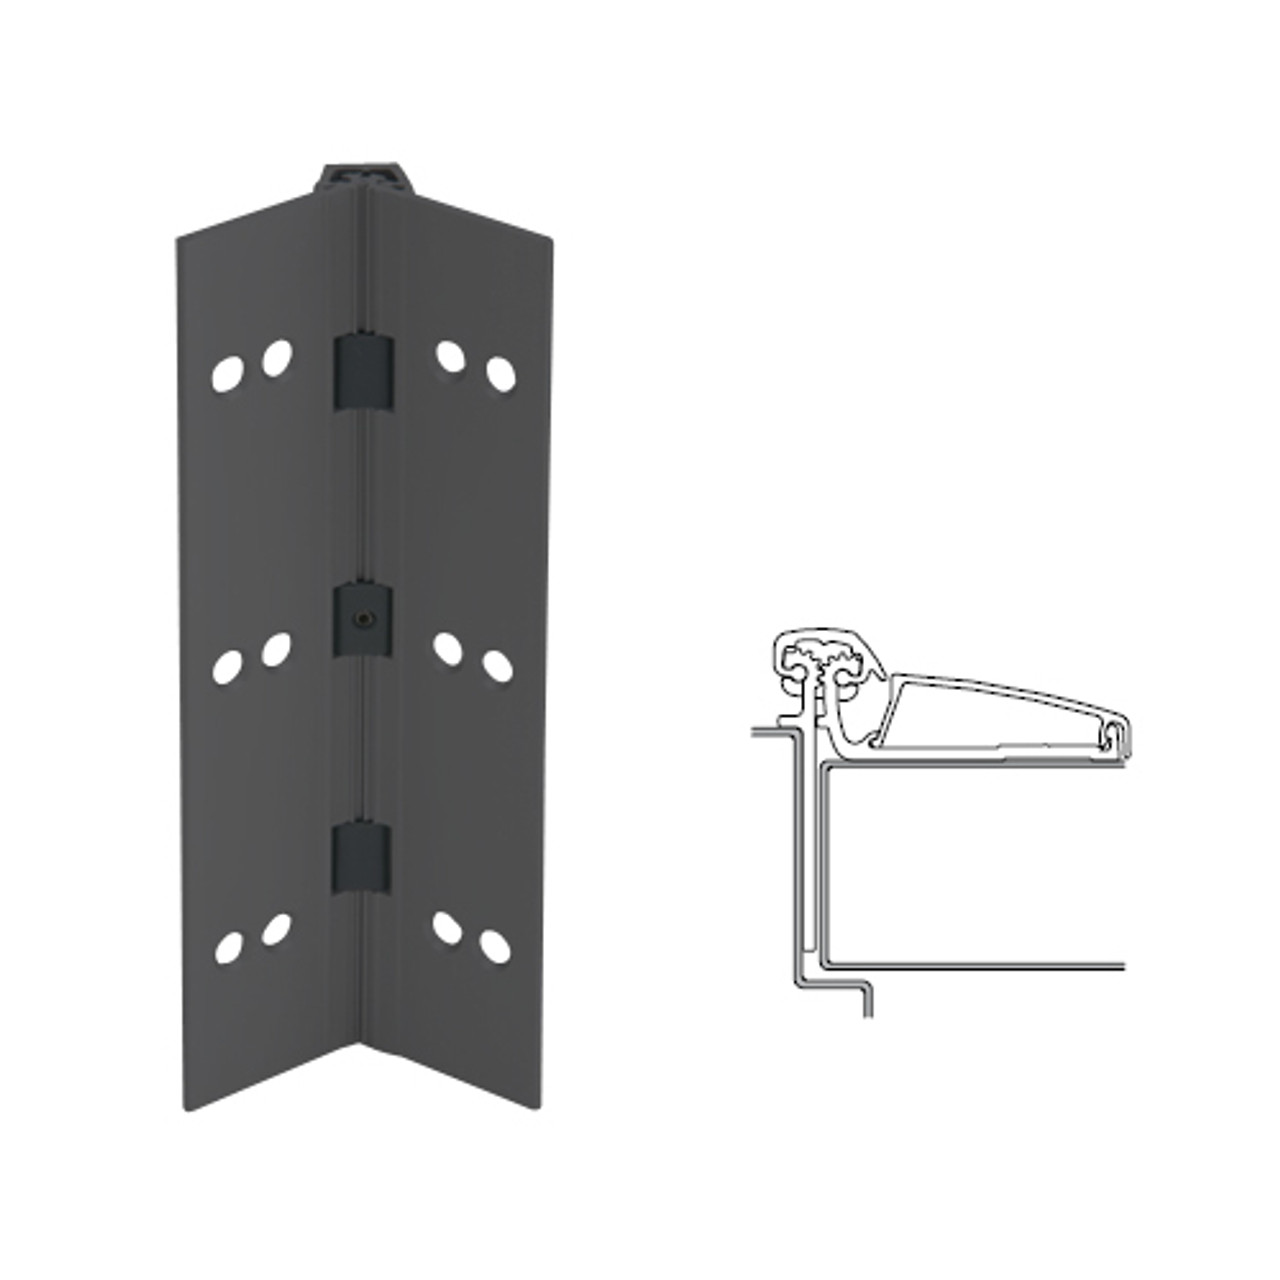 046XY-315AN-83-TEKWD IVES Adjustable Half Surface Continuous Geared Hinges with Wood Screws in Anodized Black